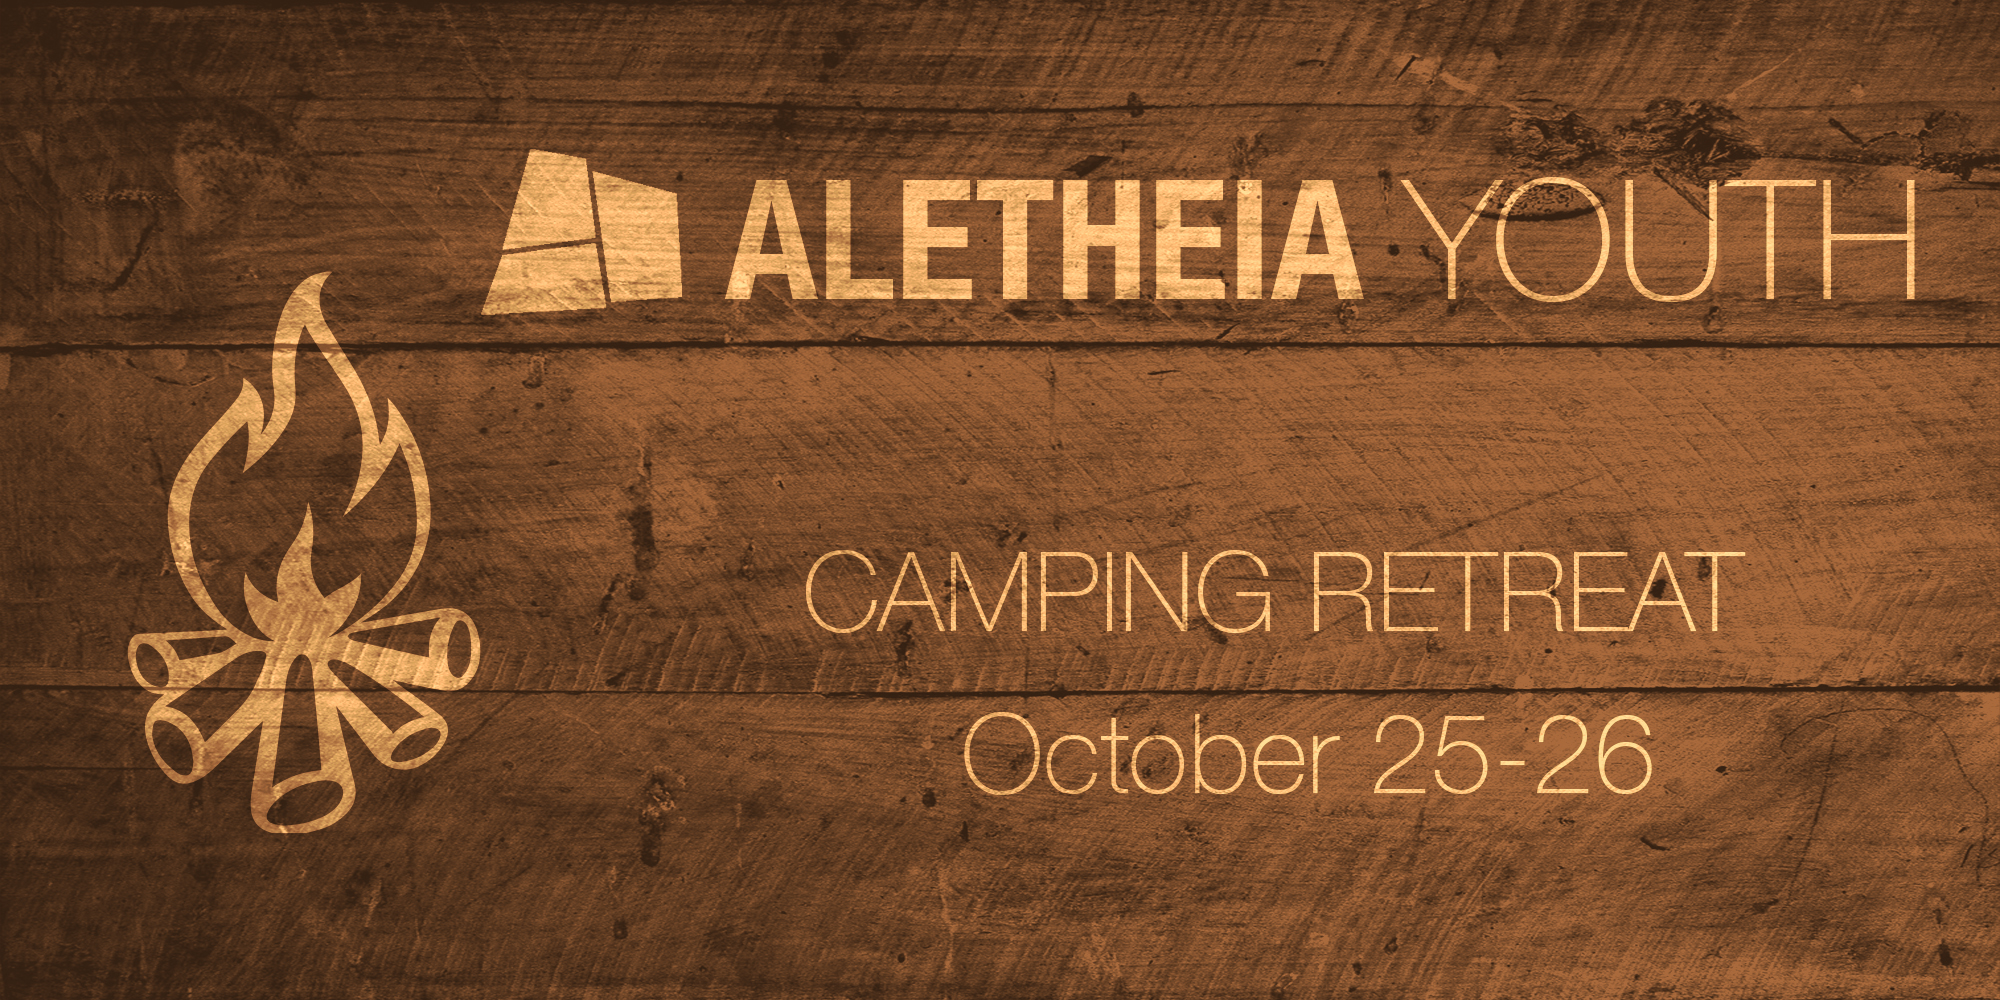 Aletheia Youth Campfire Banner image